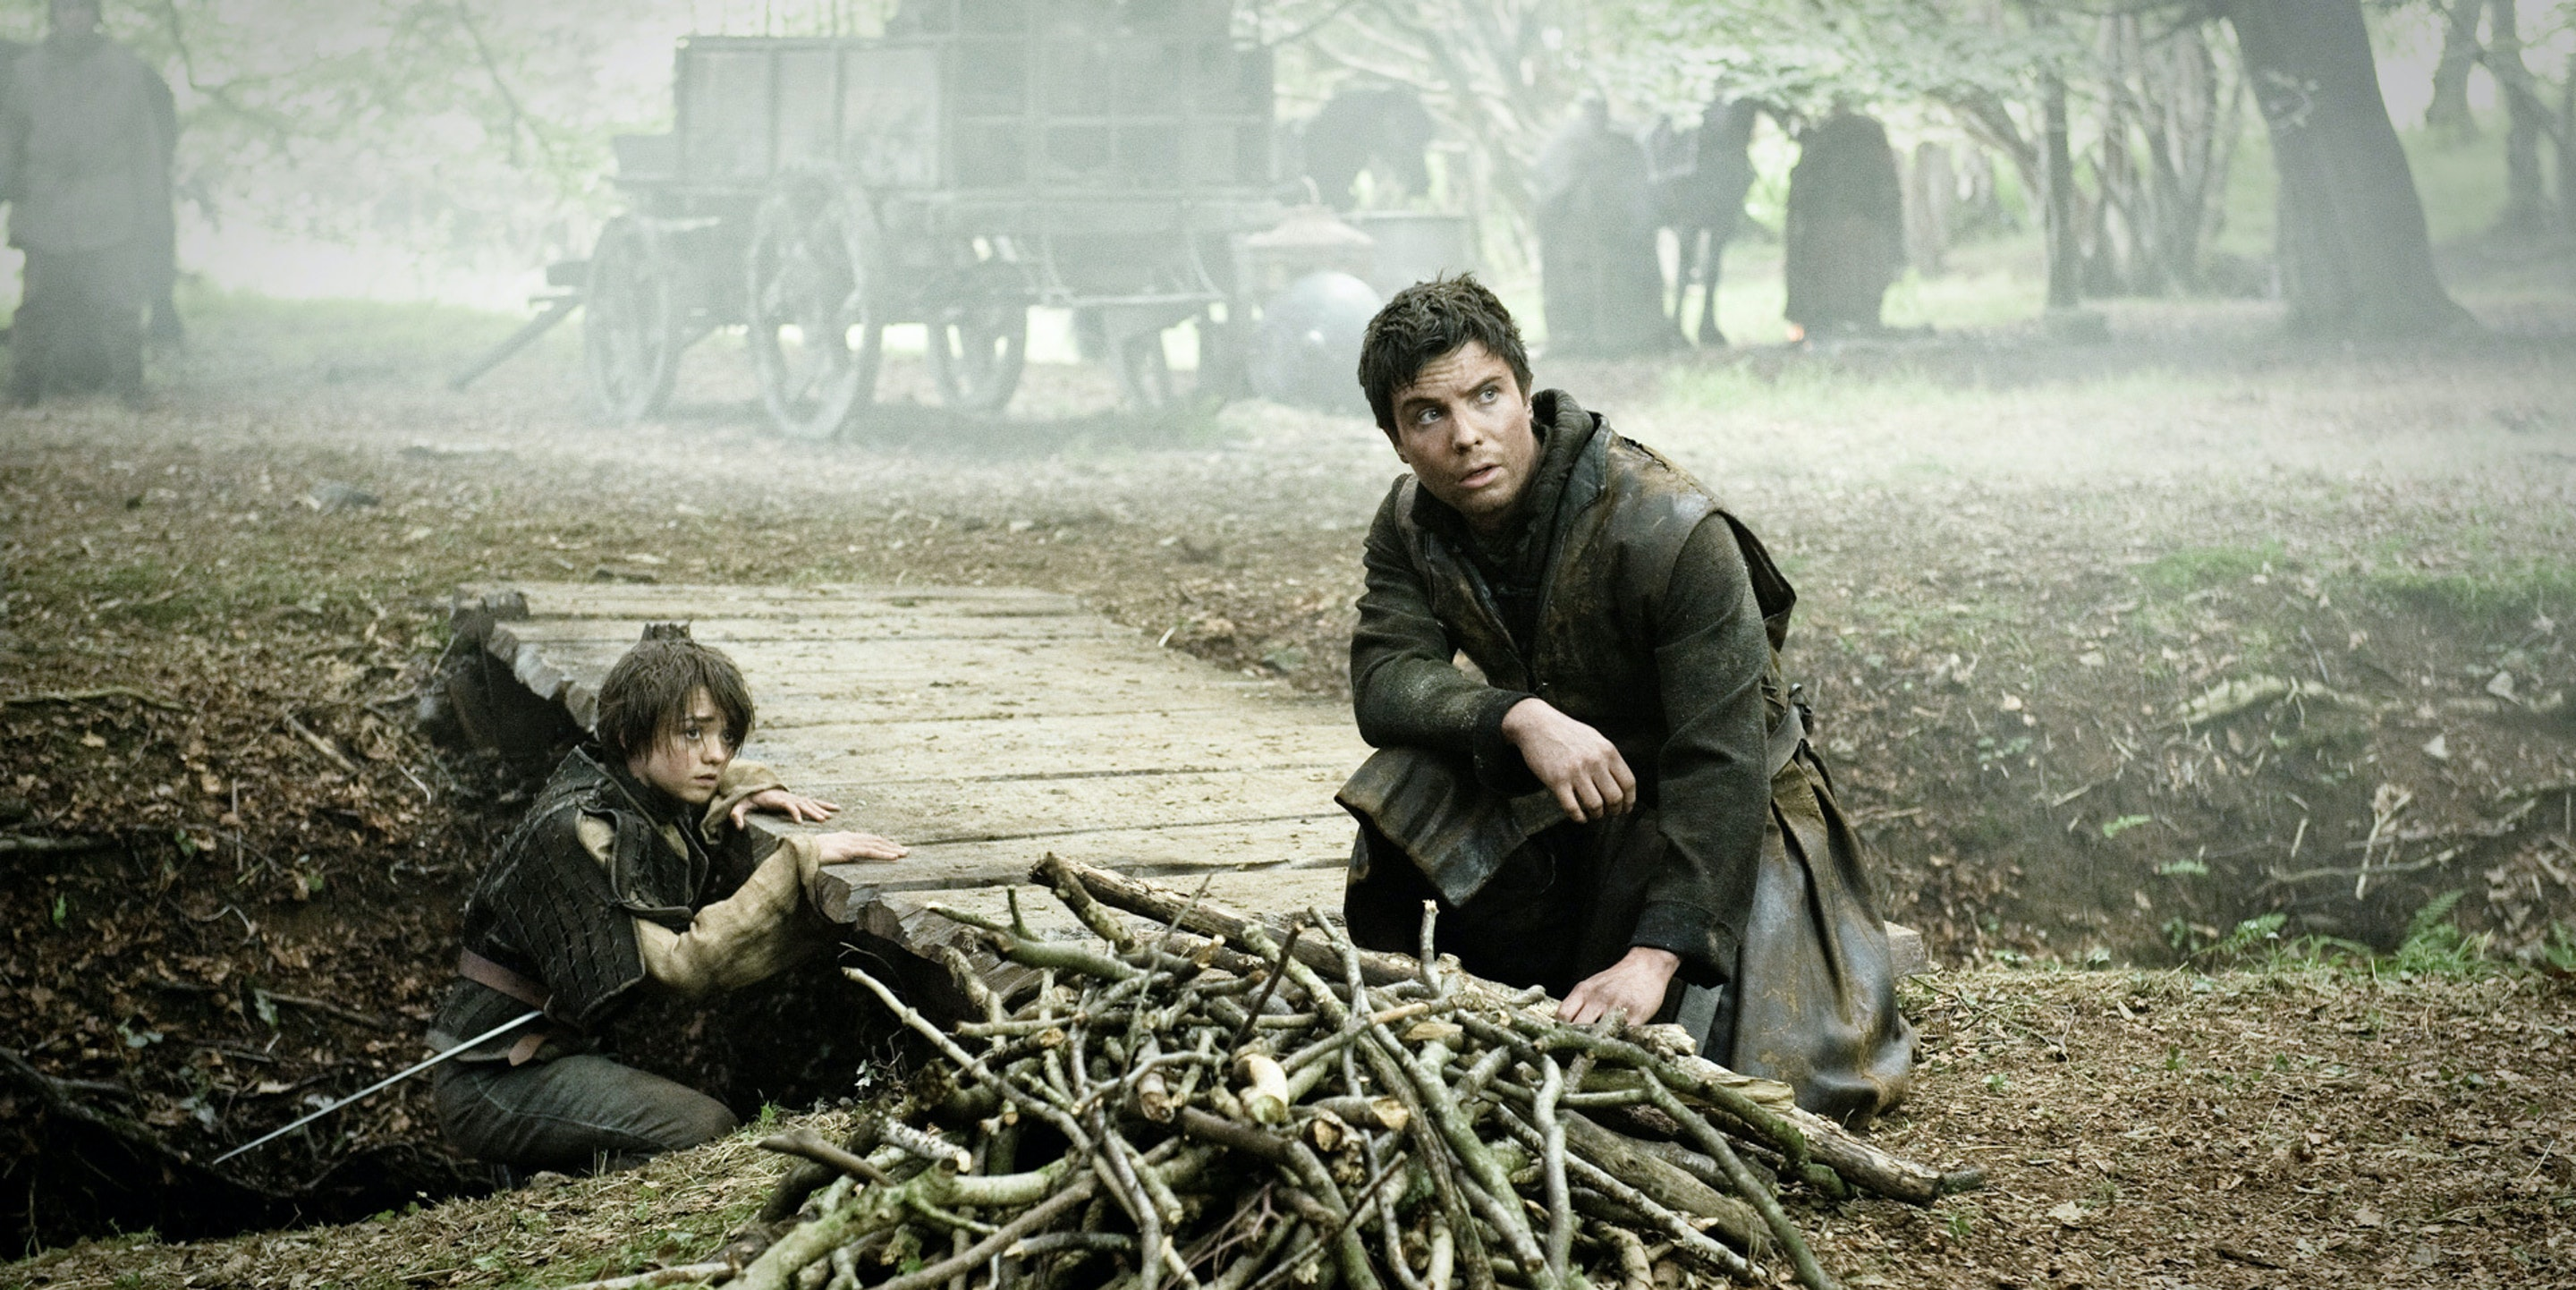 gendry will likely return to game of thrones at